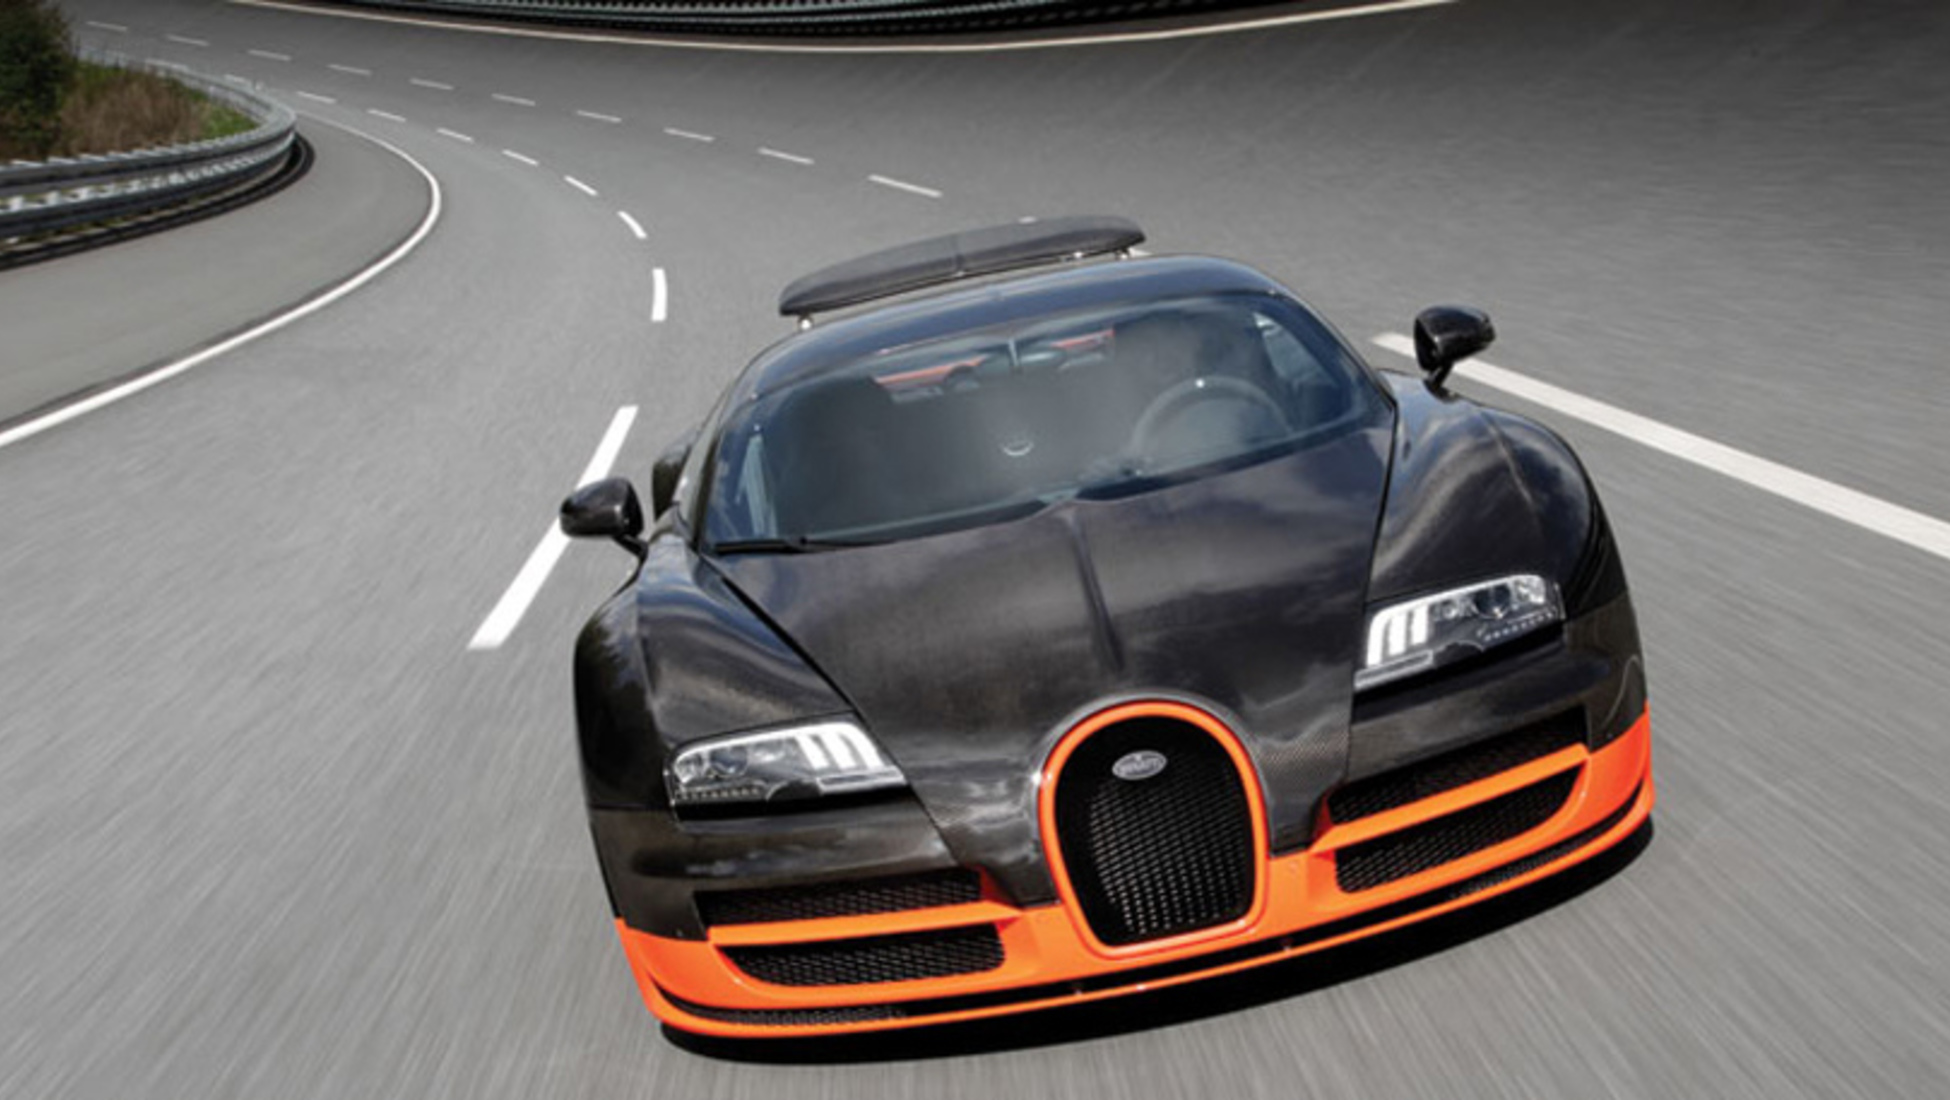 What Is The Fastest Production Car In The World >> Top 5 Fastest Production Cars Catawiki